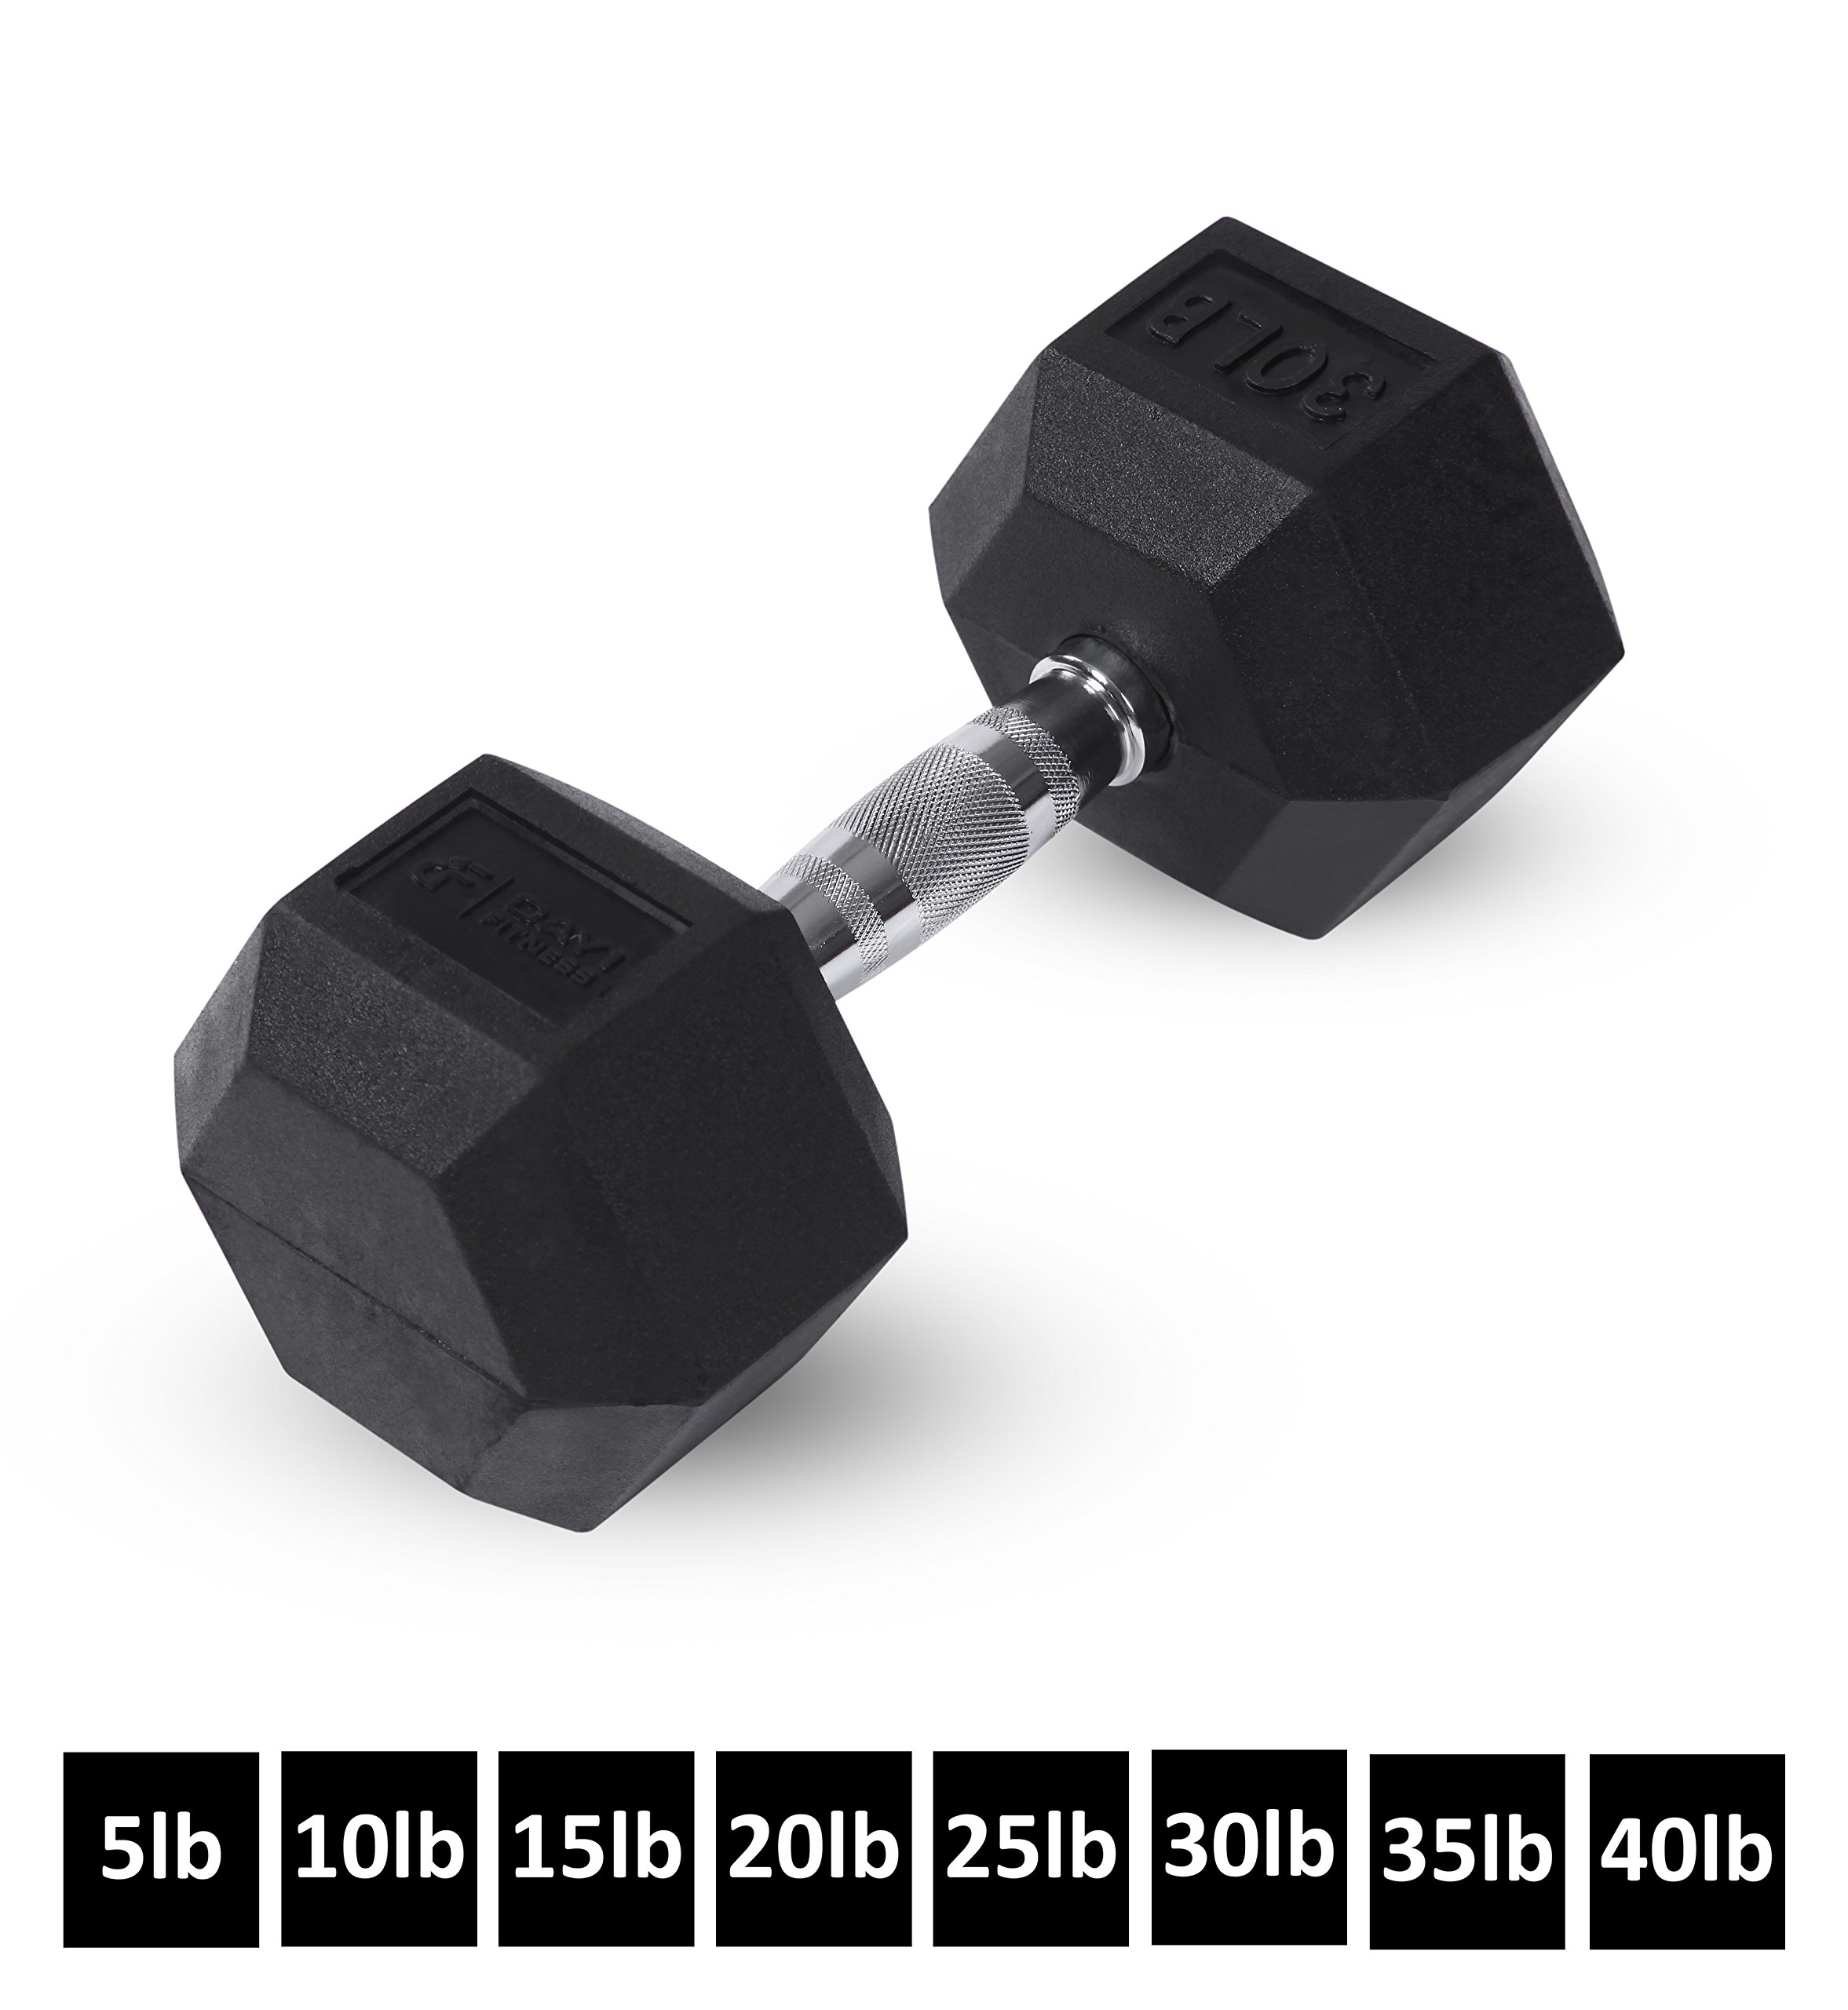 Day 1 Fitness Rubber Hex Dumbbell Shaped Heads to Prevent Rolling and Injury - Ergonomic Hand Weights for Exercise, Therapy, Building Muscle, Strength and Weight Training - 30 lb Single